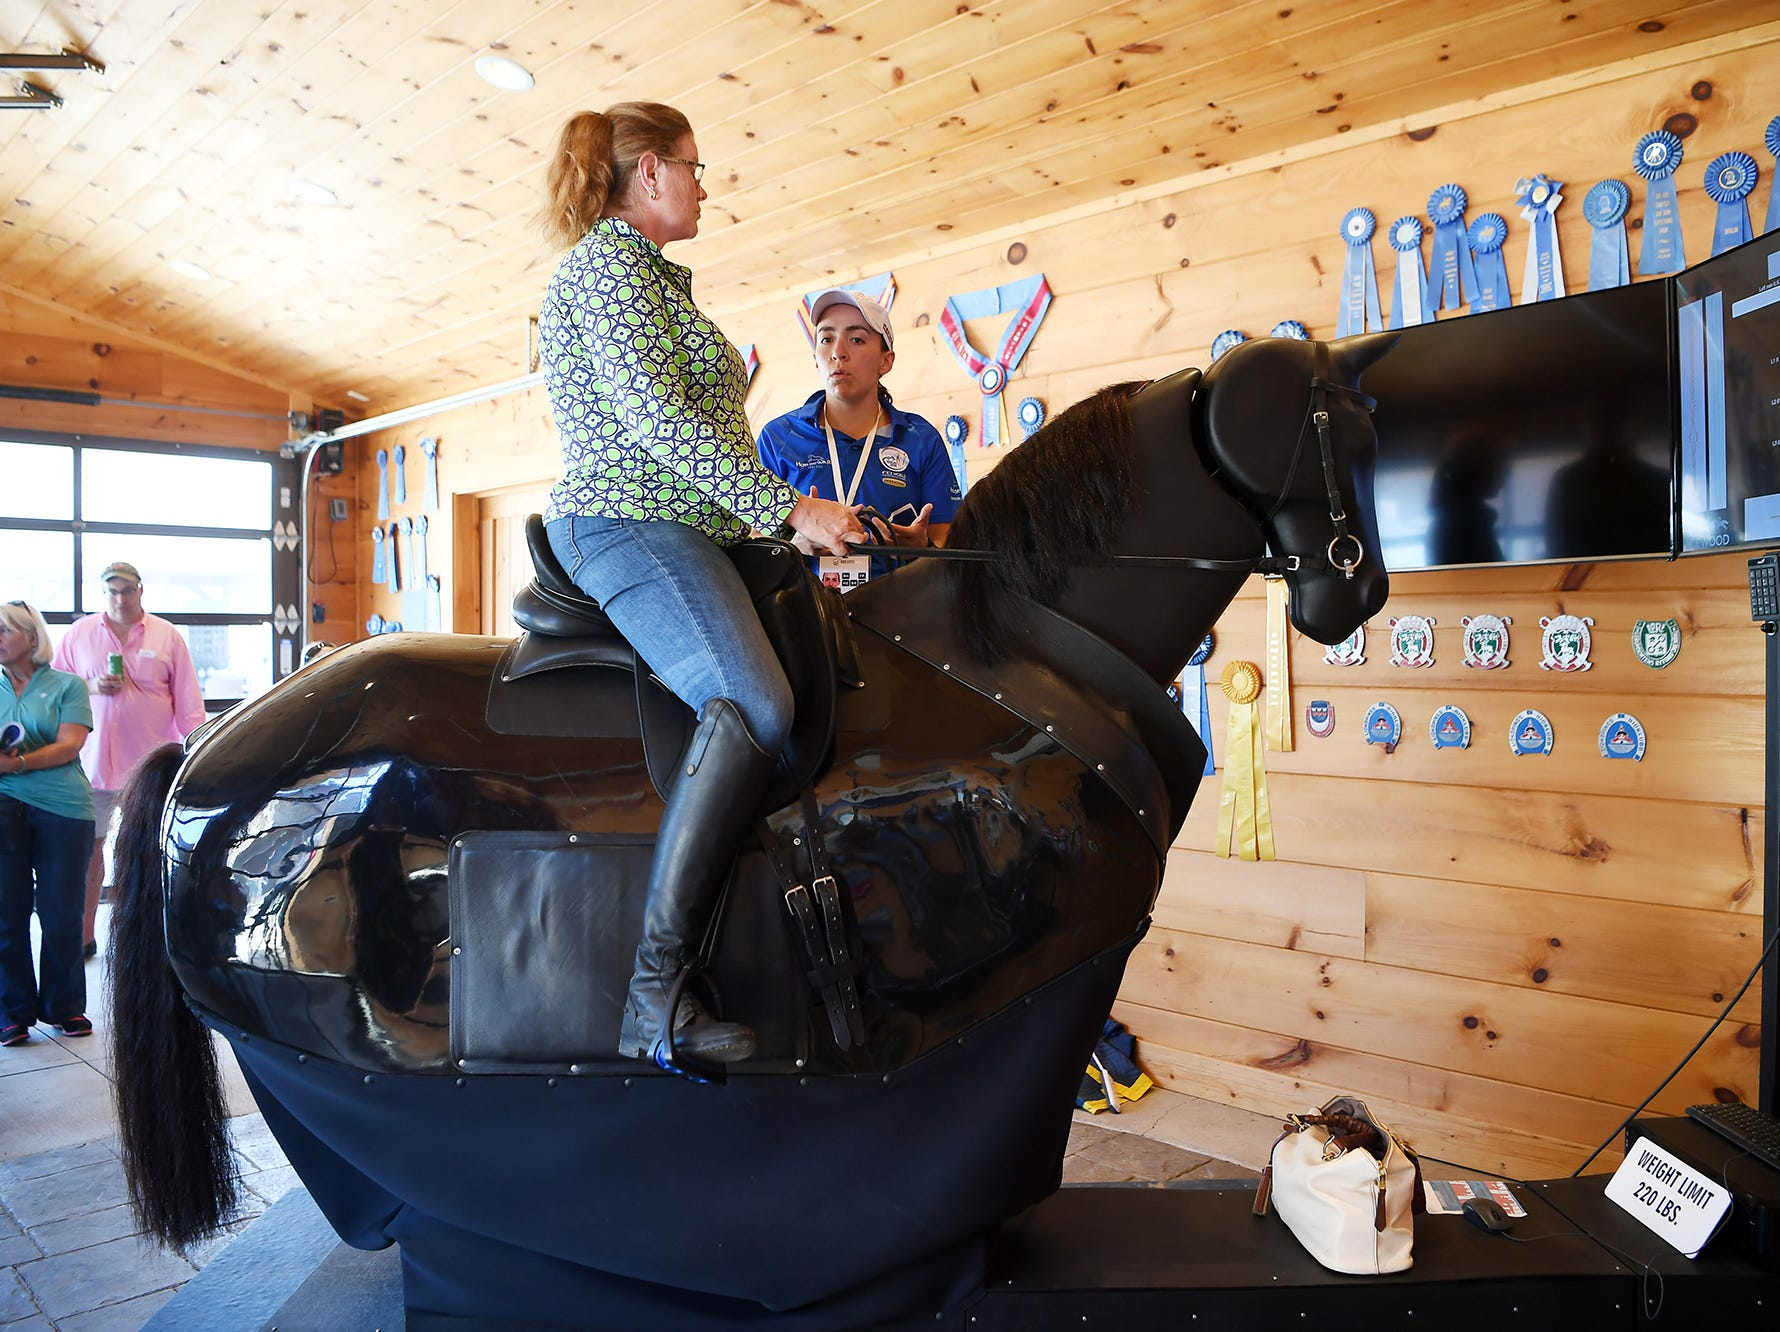 Sara Love, of New York, rides a horse simulator with help from Juliana Gutierrez, of Columbia, at the World Equestrian Games in Tryon Sept. 13, 2018.